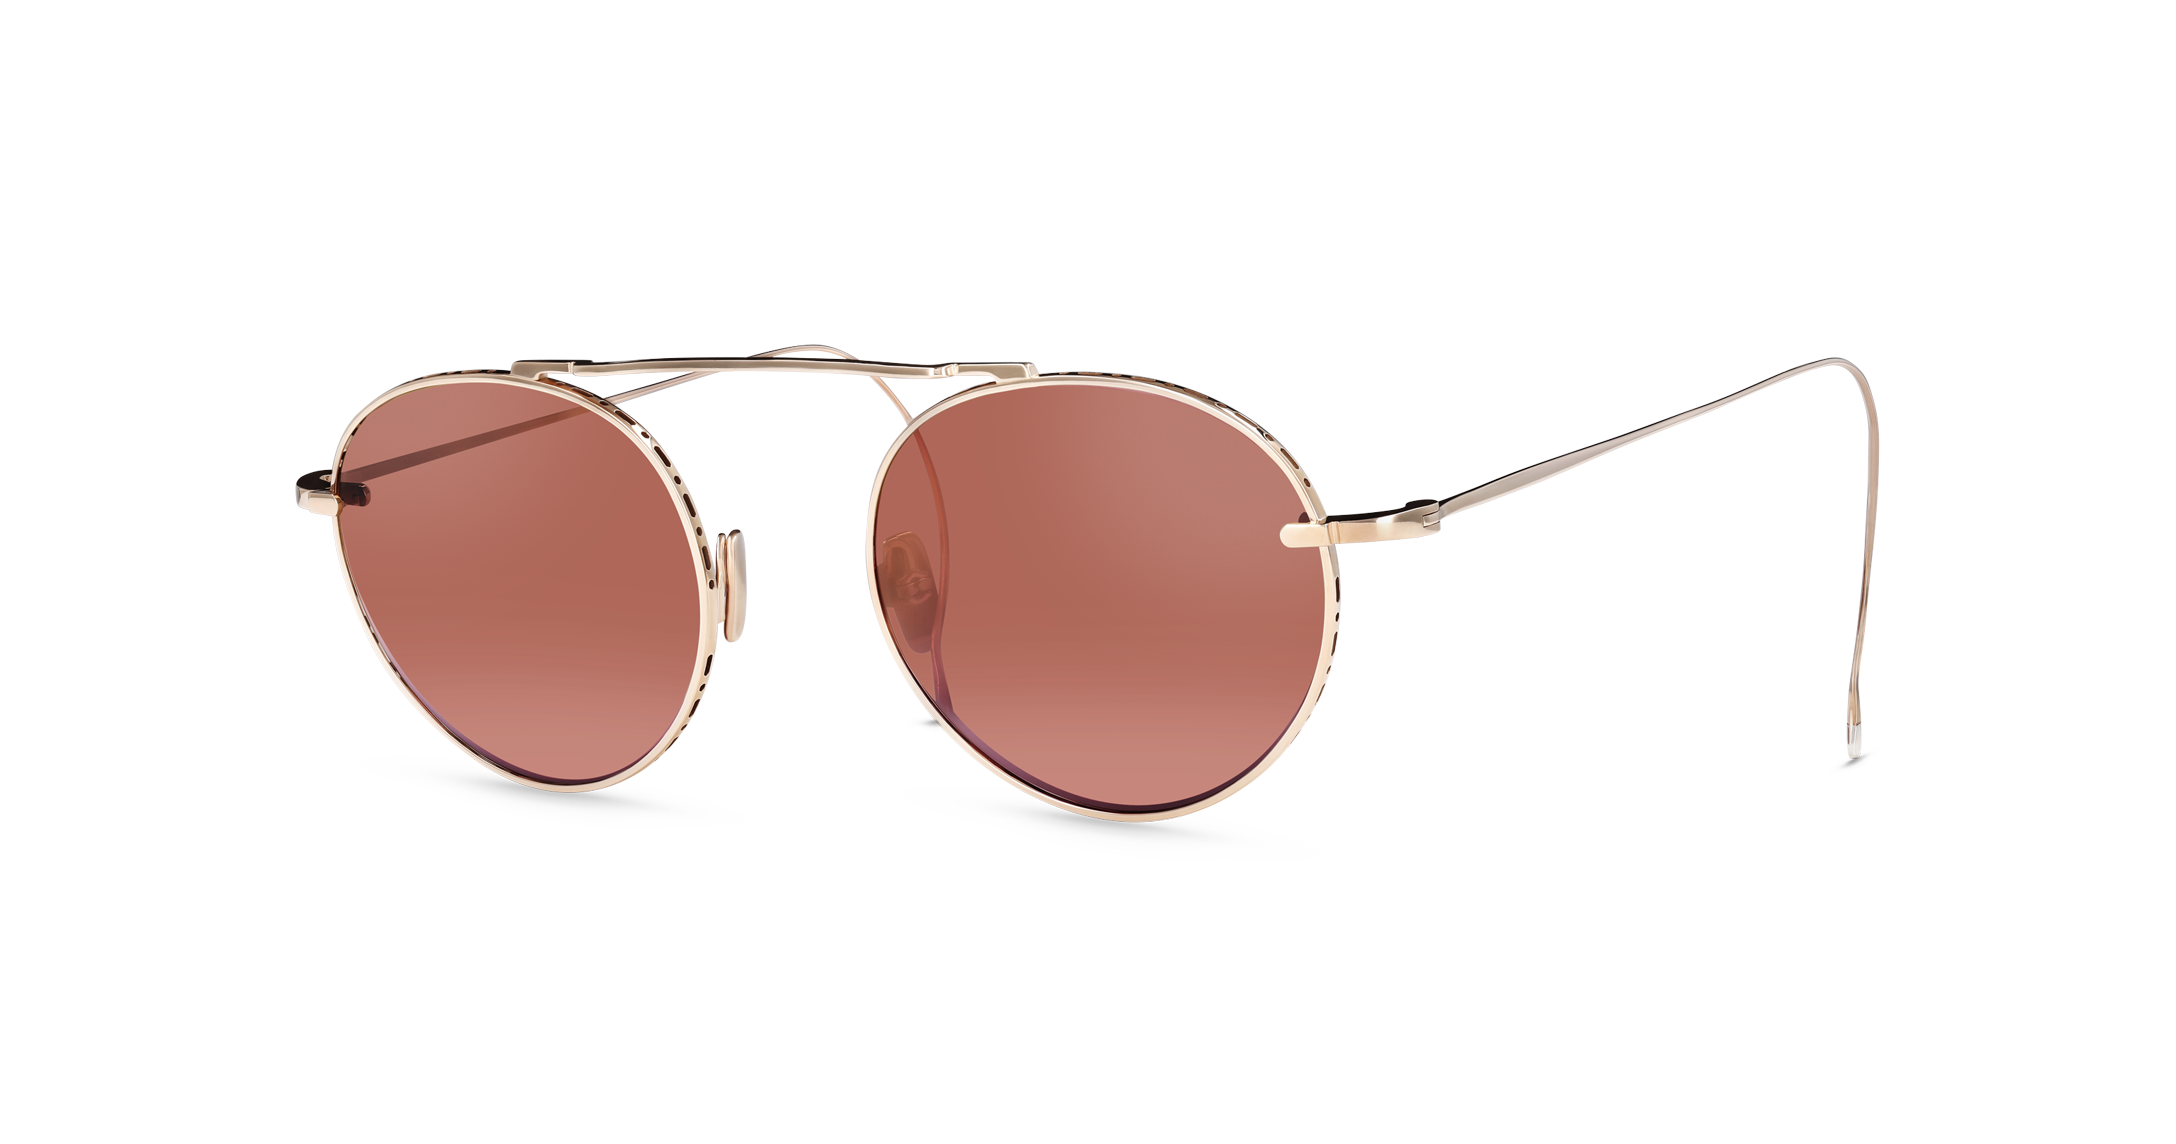 Mr.-Light-Rei-S-Rose-Gold-18KRG-Sunglasses